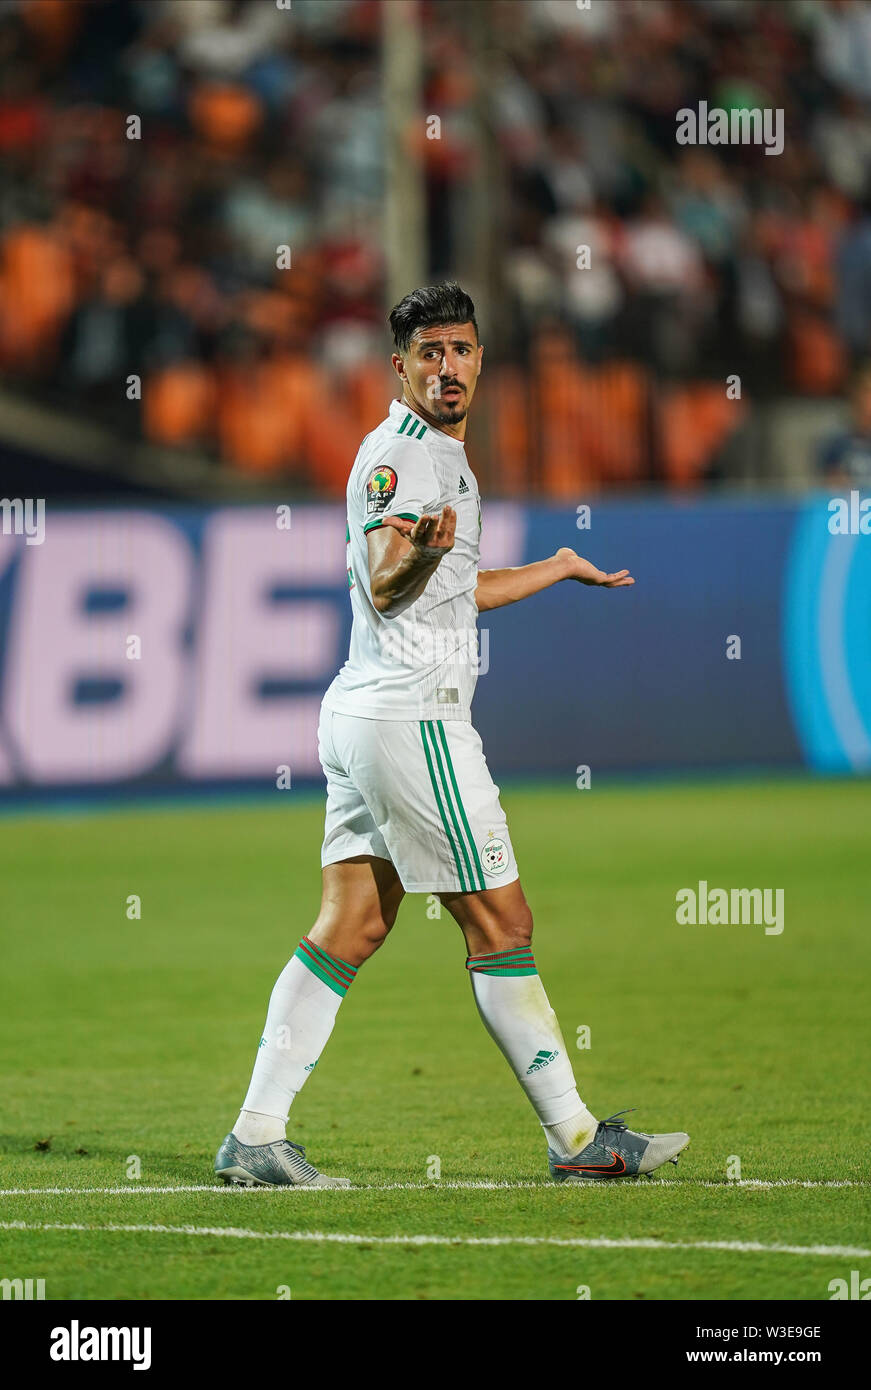 Cairo, Algeria, Egypt. 14th July, 2019. FRANCE OUT July 14, 2019: Baghdad Bounedjah of Algeria during the 2019 African Cup of Nations match between Algeria and Nigeria at the Cairo International Stadium in Cairo, Egypt. Ulrik Pedersen/CSM/Alamy Live News - Stock Image